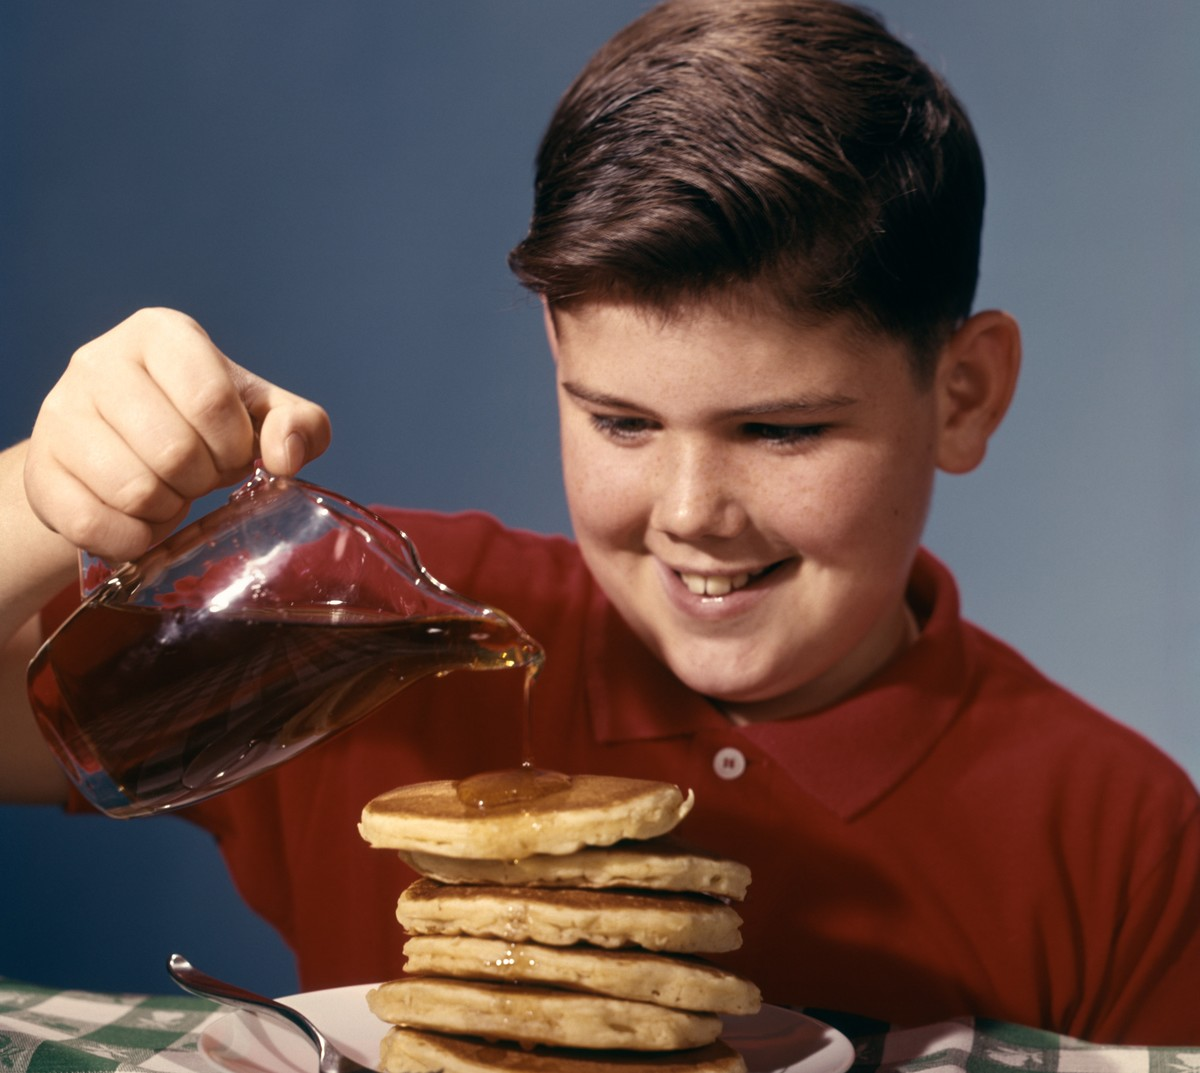 A smiling boy pours maple syrup over a tall stack of pancakes.